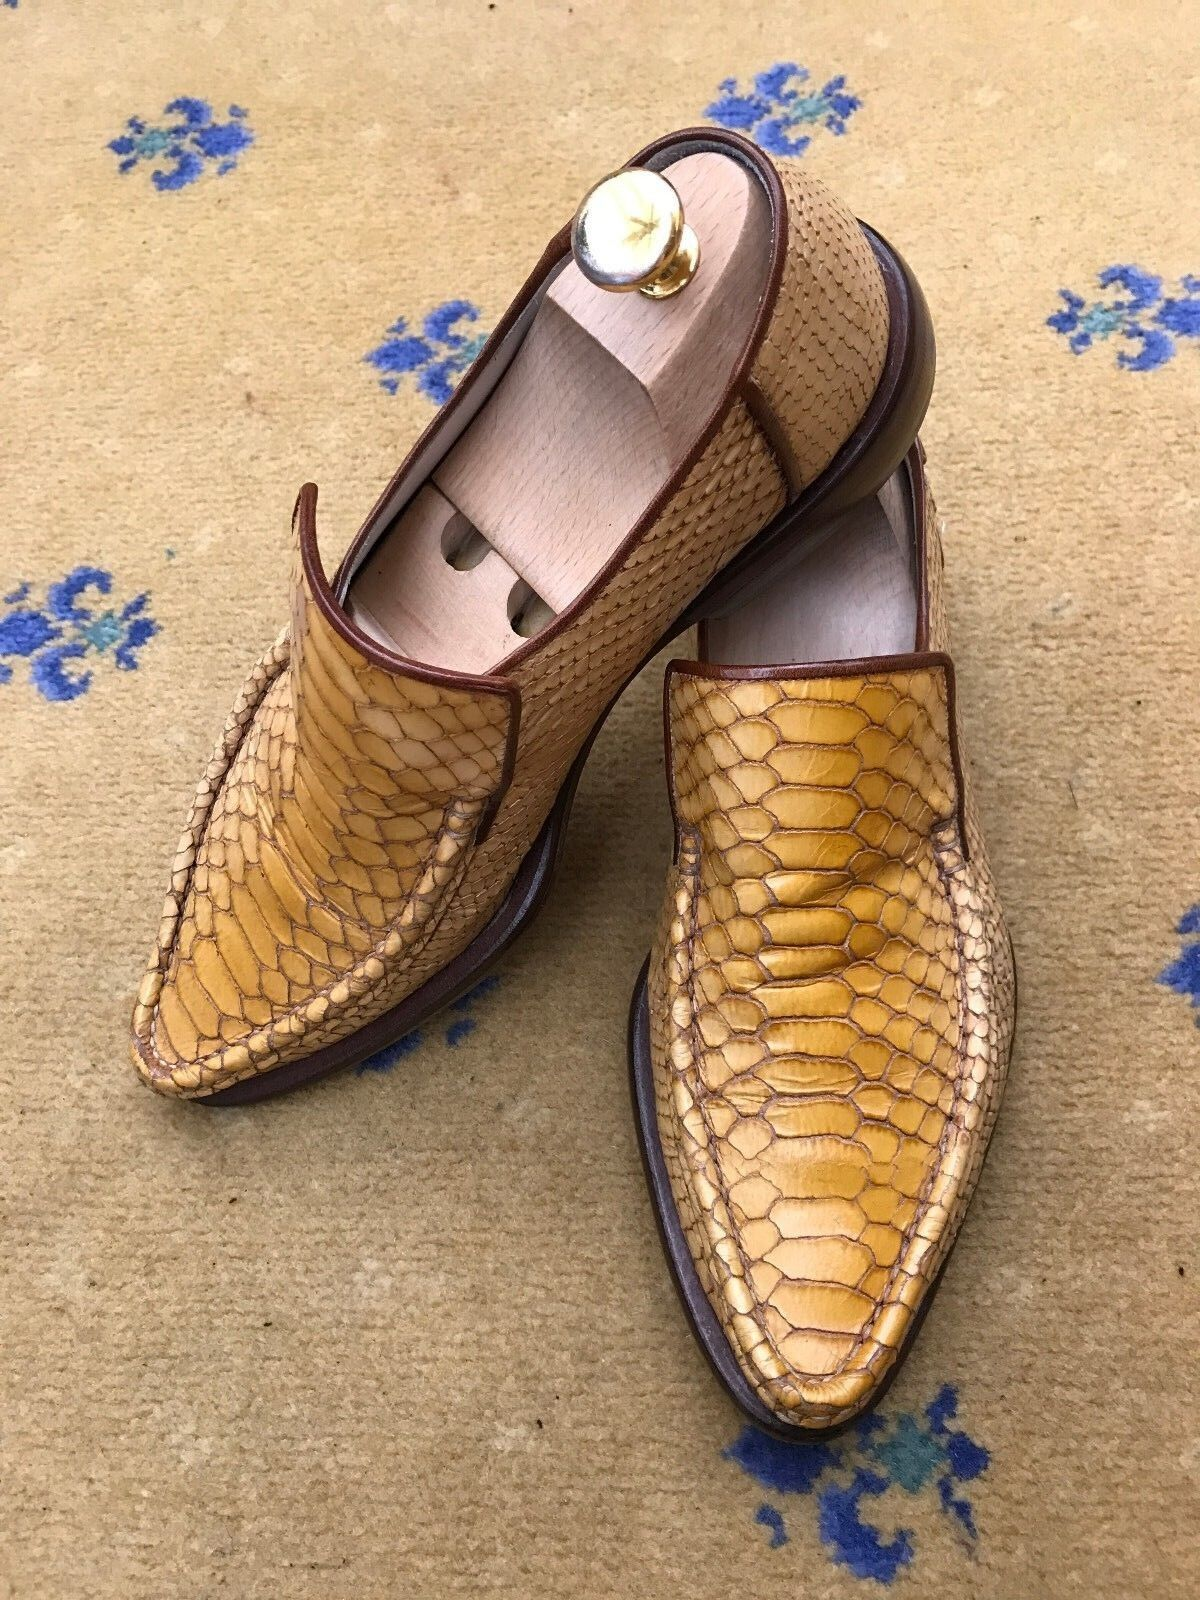 Oliver Sweeney Men's Shoes Yellow Snakeskin effect Ravioli Loafers US 8 41